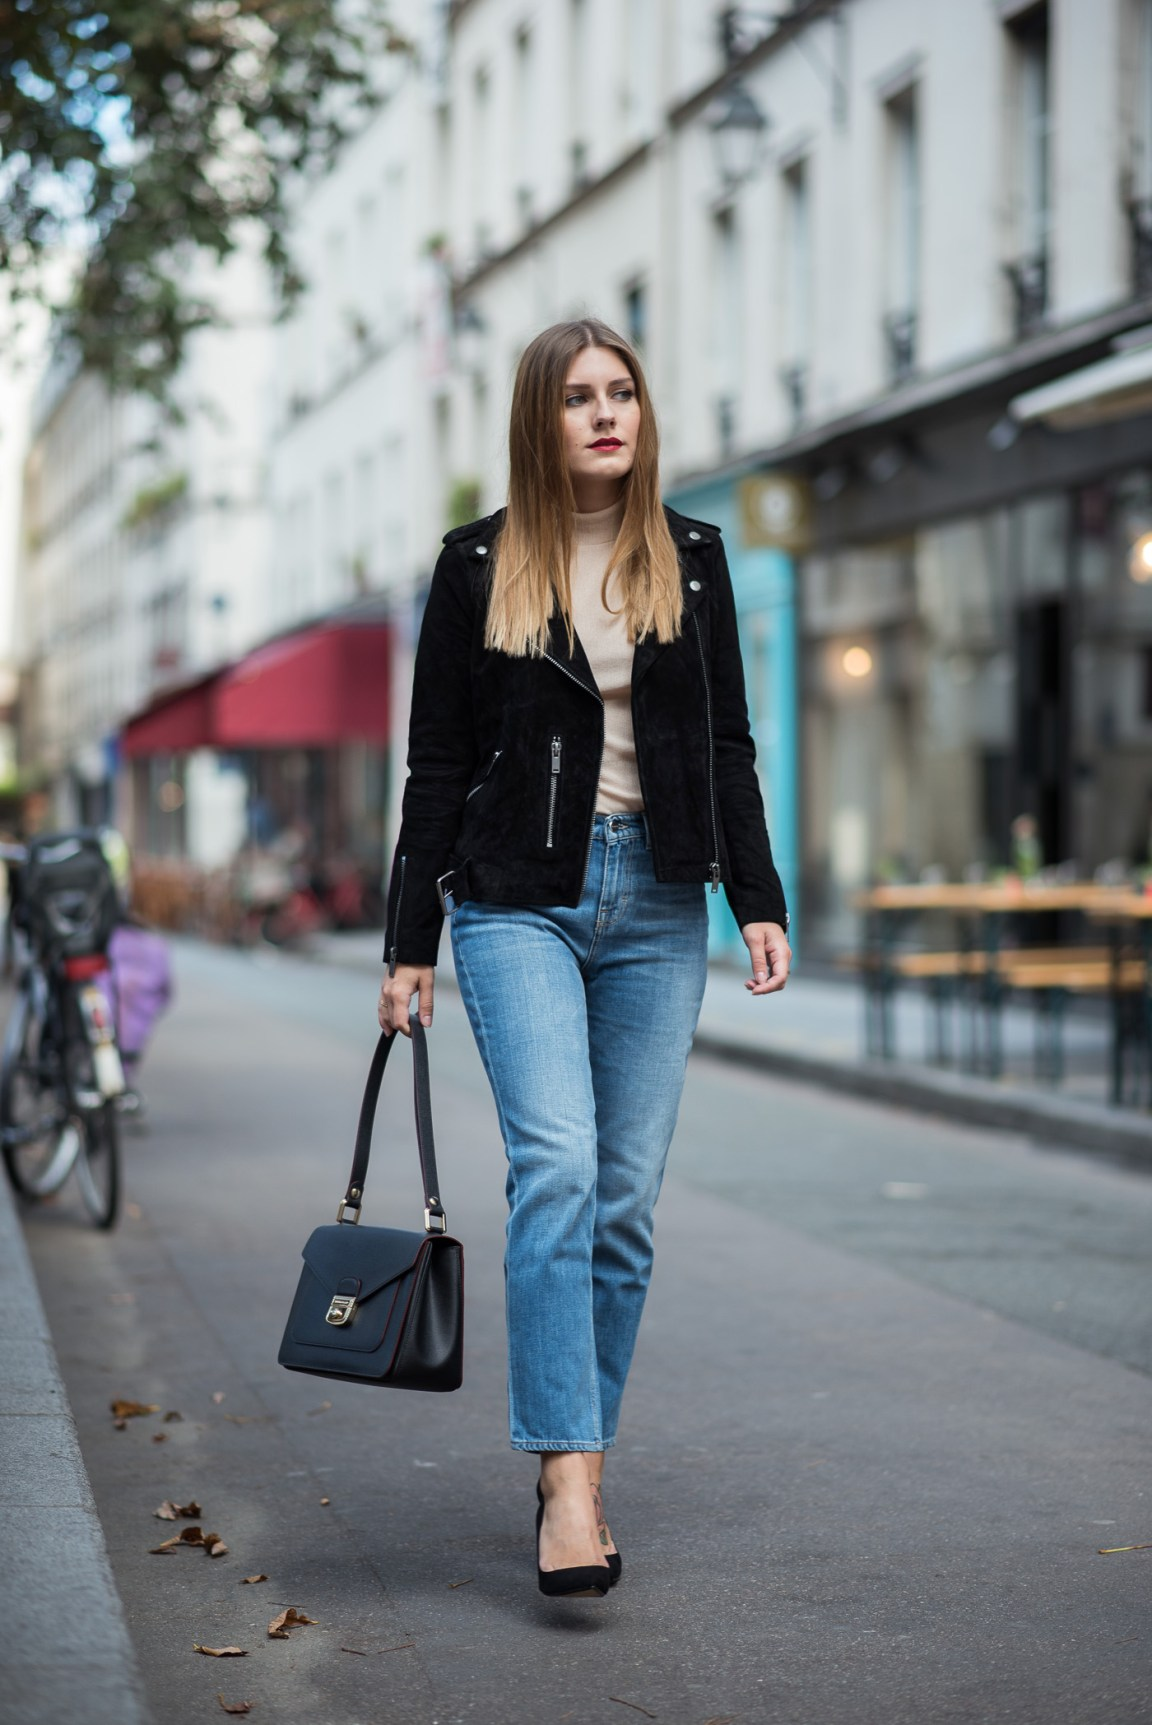 paris_fashion_week_leather_jacket_selected_femme_5